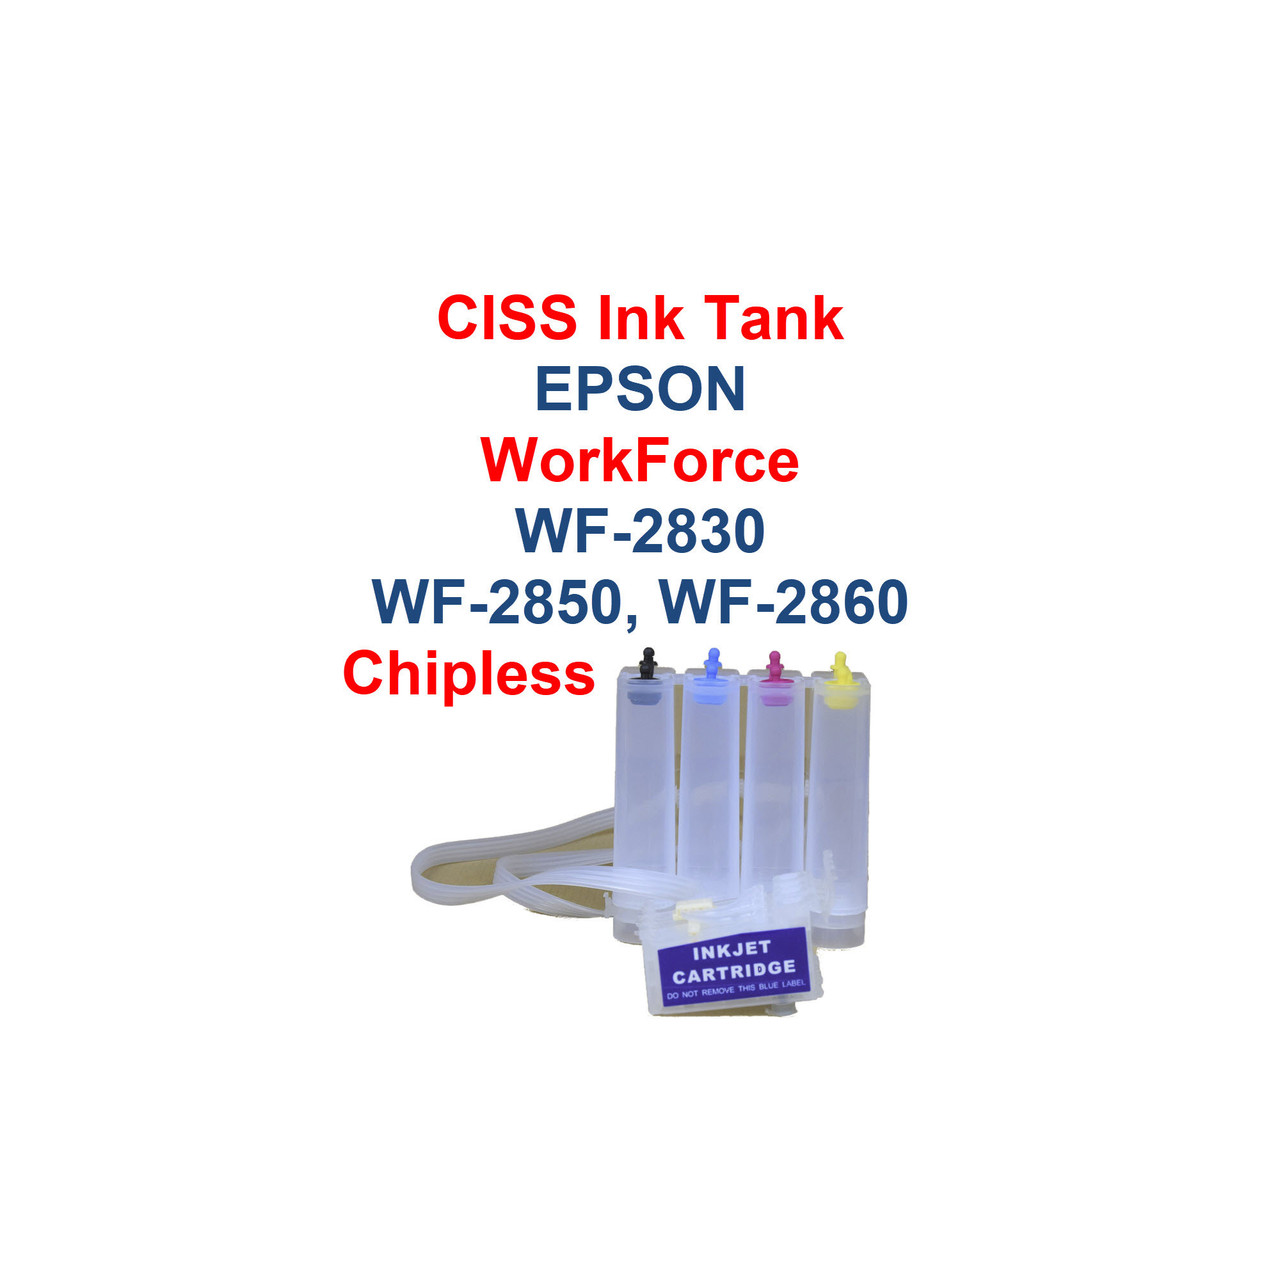 CISS Chipless Ink System for Epson WorkForce wf-2830 WF-2850 WF-2860 printers   Epson WorkForce WF-2830 Epson WorkForce WF-2850 Epson WorkForce WF-2860  CISS Chipless Ink Tank System for Epson WorkForce WF-2830, WF-2850, WF-2860 printers  Chipless NO CHIPS  This CISS must be used with the Chipless Firmware(we do not sell the Firmware) go to www.inkchip.net for firmware  CISS Tanks hold 100ml of ink each color  Ciss Ink Tank sold empty(No Ink)   >>> Los Angeles same day delivery available (Contact us for pricing) <<<